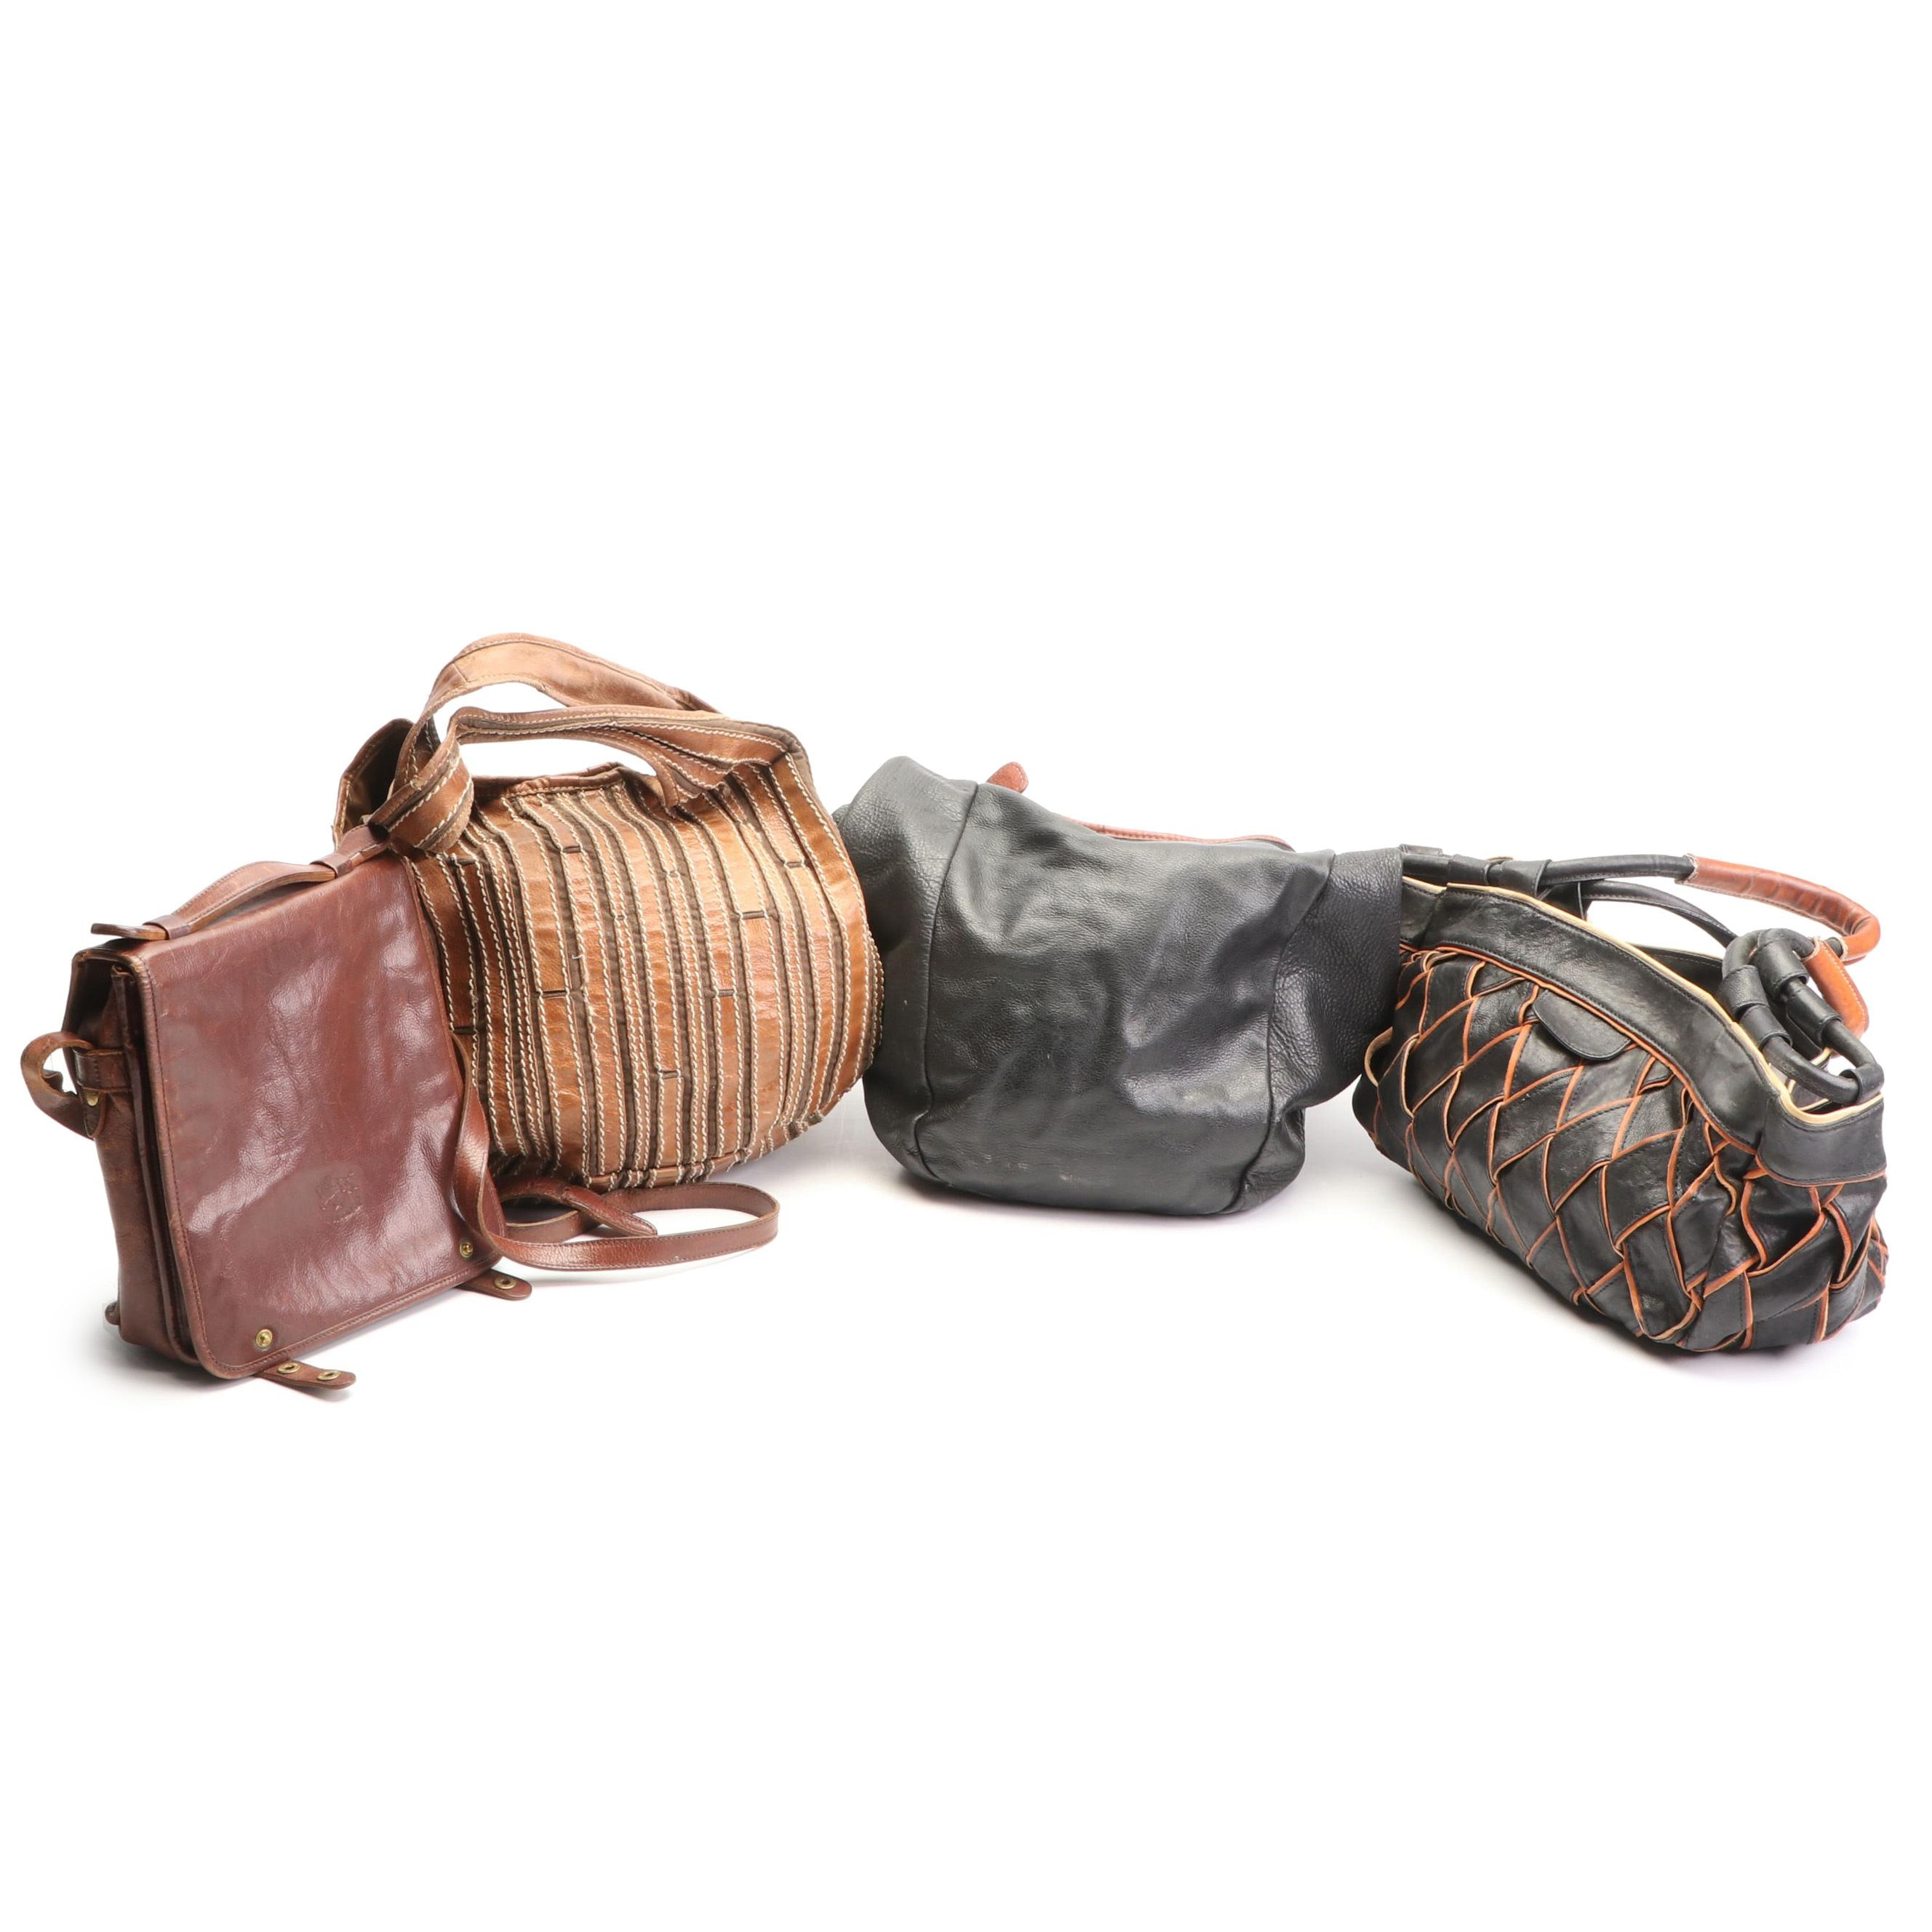 Four Leather Handbags Featuring Woven Charles David Purse